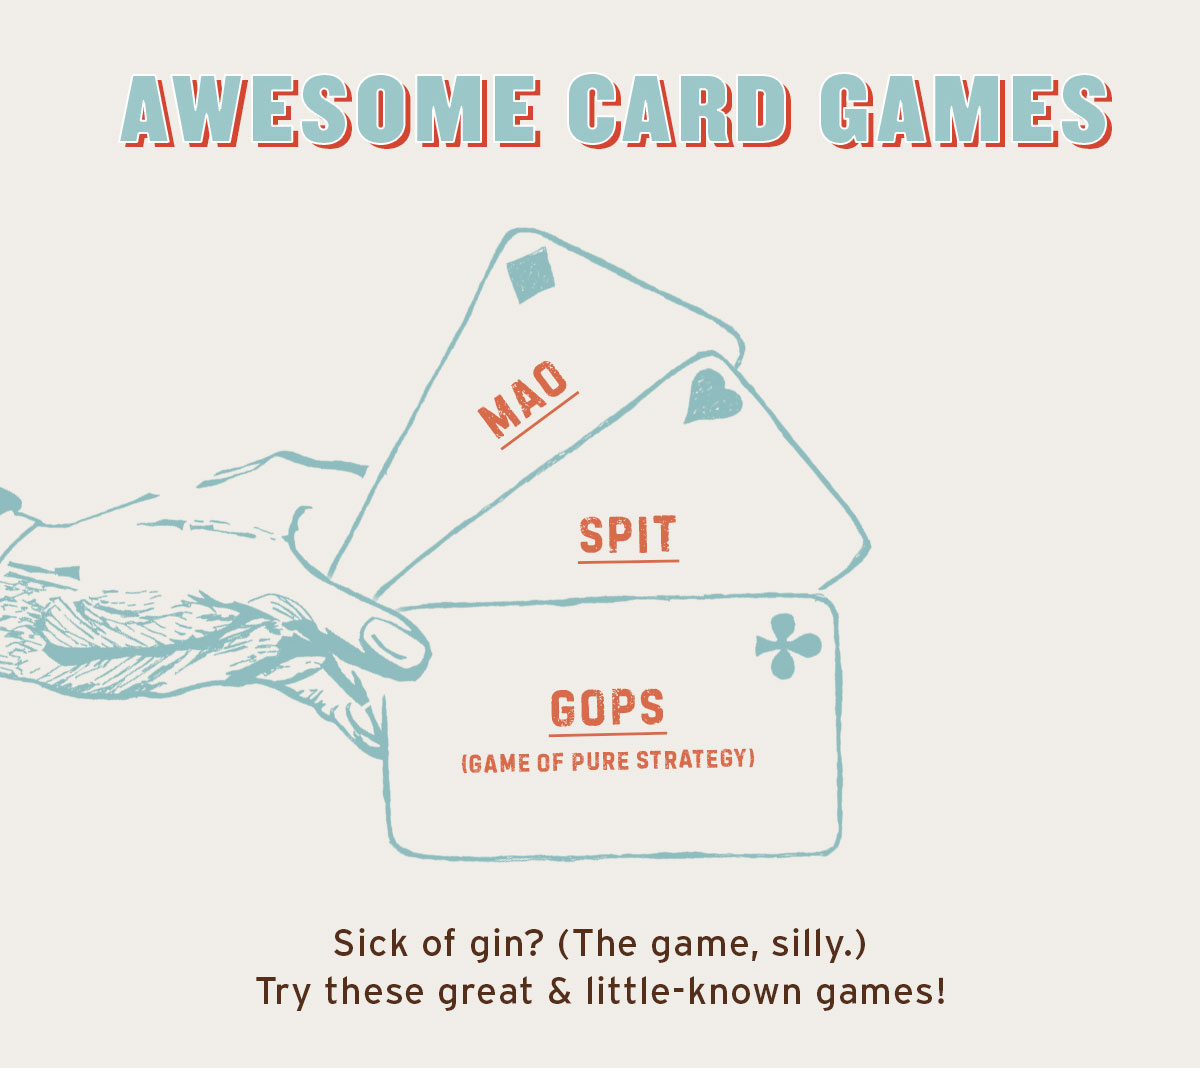 Awesome Card Games To Try—If You're Feeling a Little Sick of Gin (The Game, Silly.)